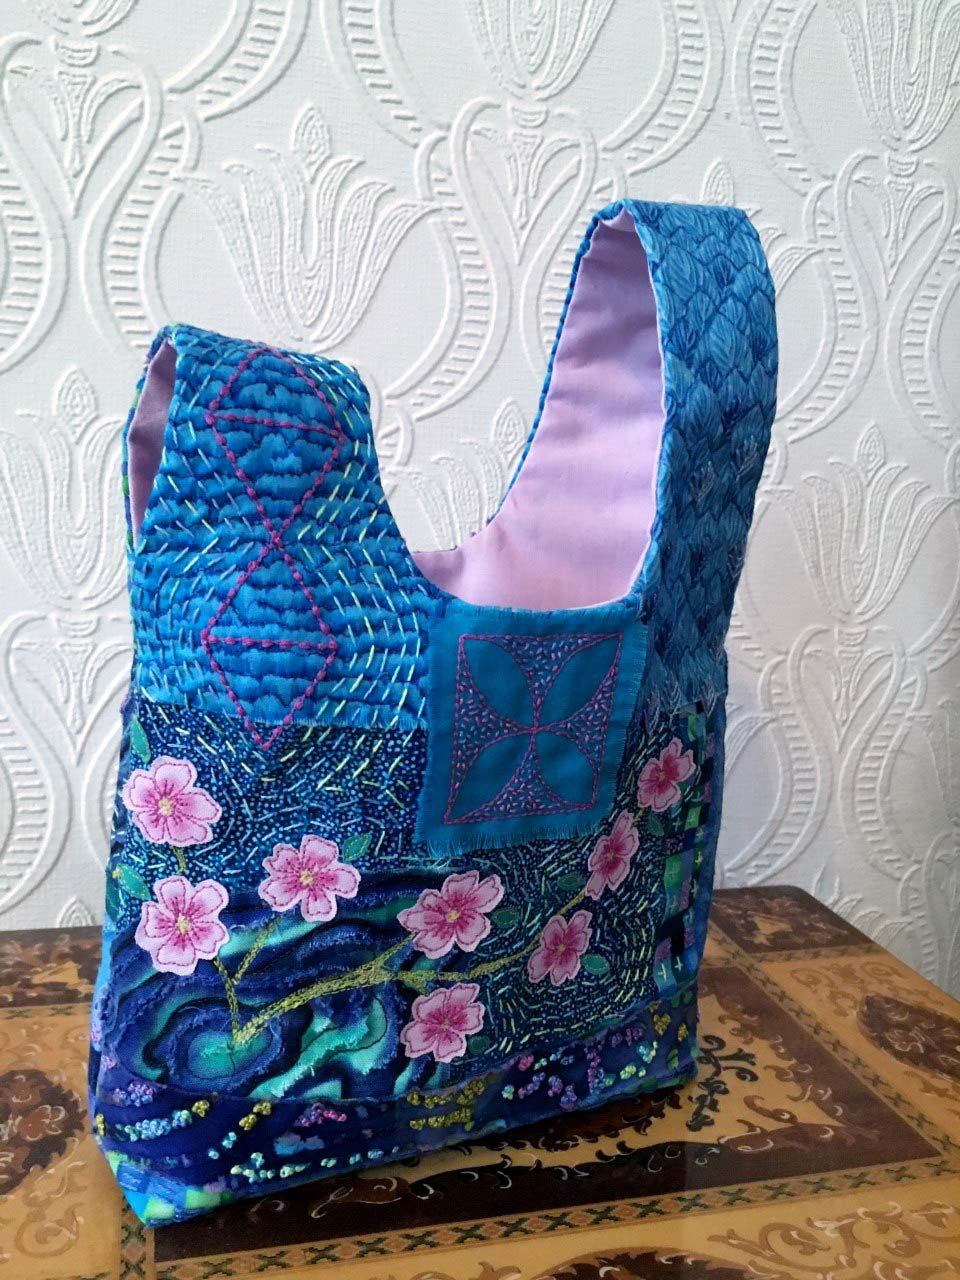 (back view)JAPANESE KNOT BAG by Sue Bennett, Lythom St. Annes branch, made using the Boro technique of applying patches with hand and machine embroidery. The chrysanthemum and cherry blossom were machine stitched and hand painted, Aurifil competition 2021